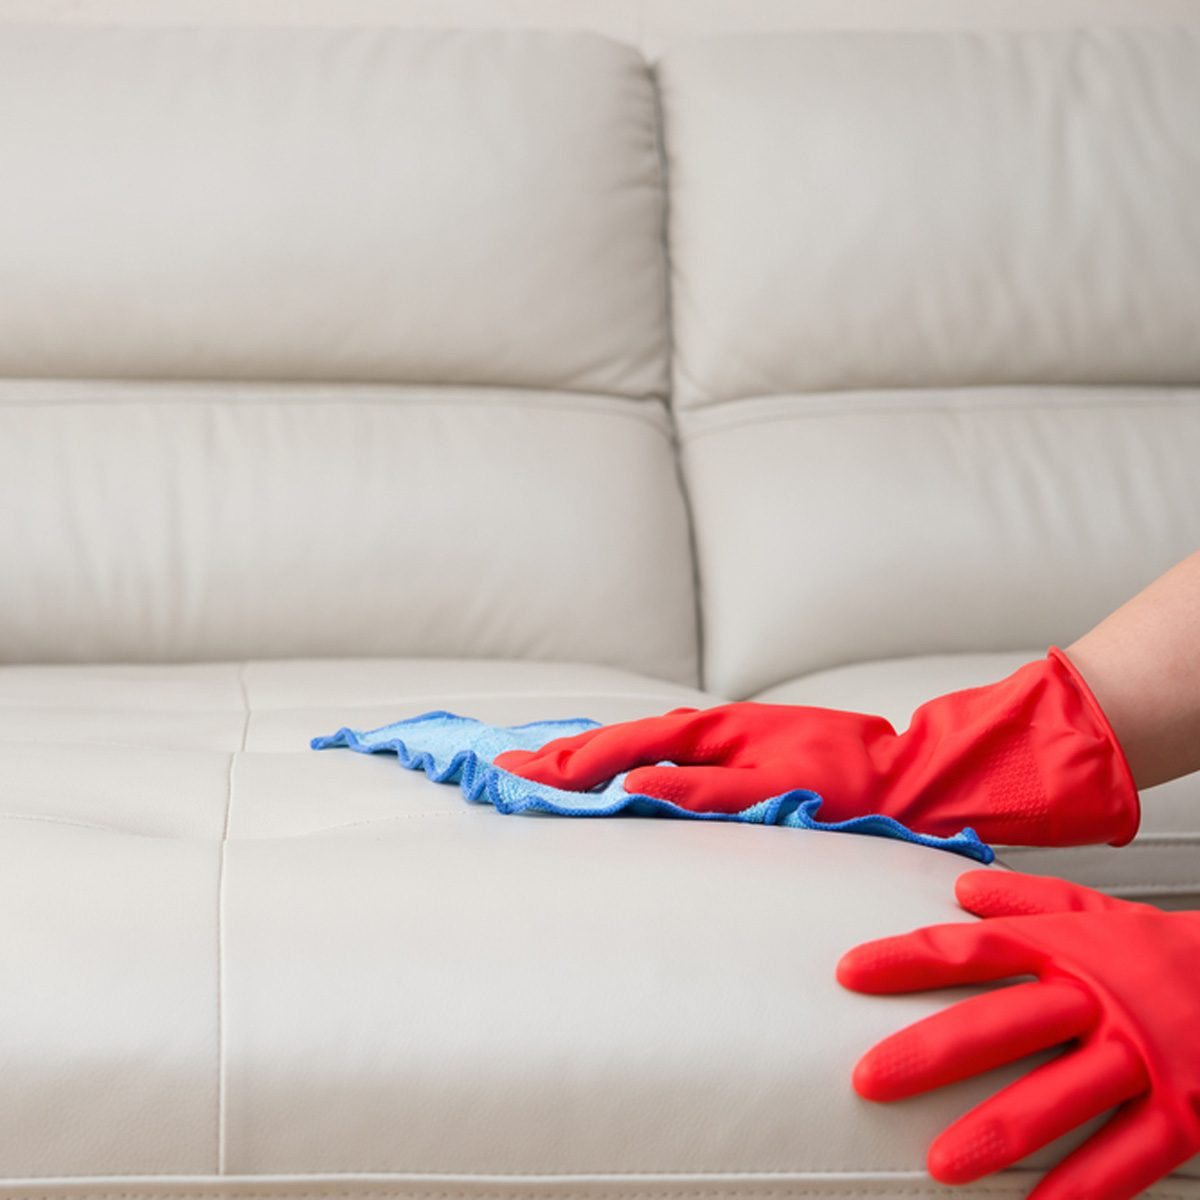 shutterstock_435822565 cleaning leather furniture rubber gloves